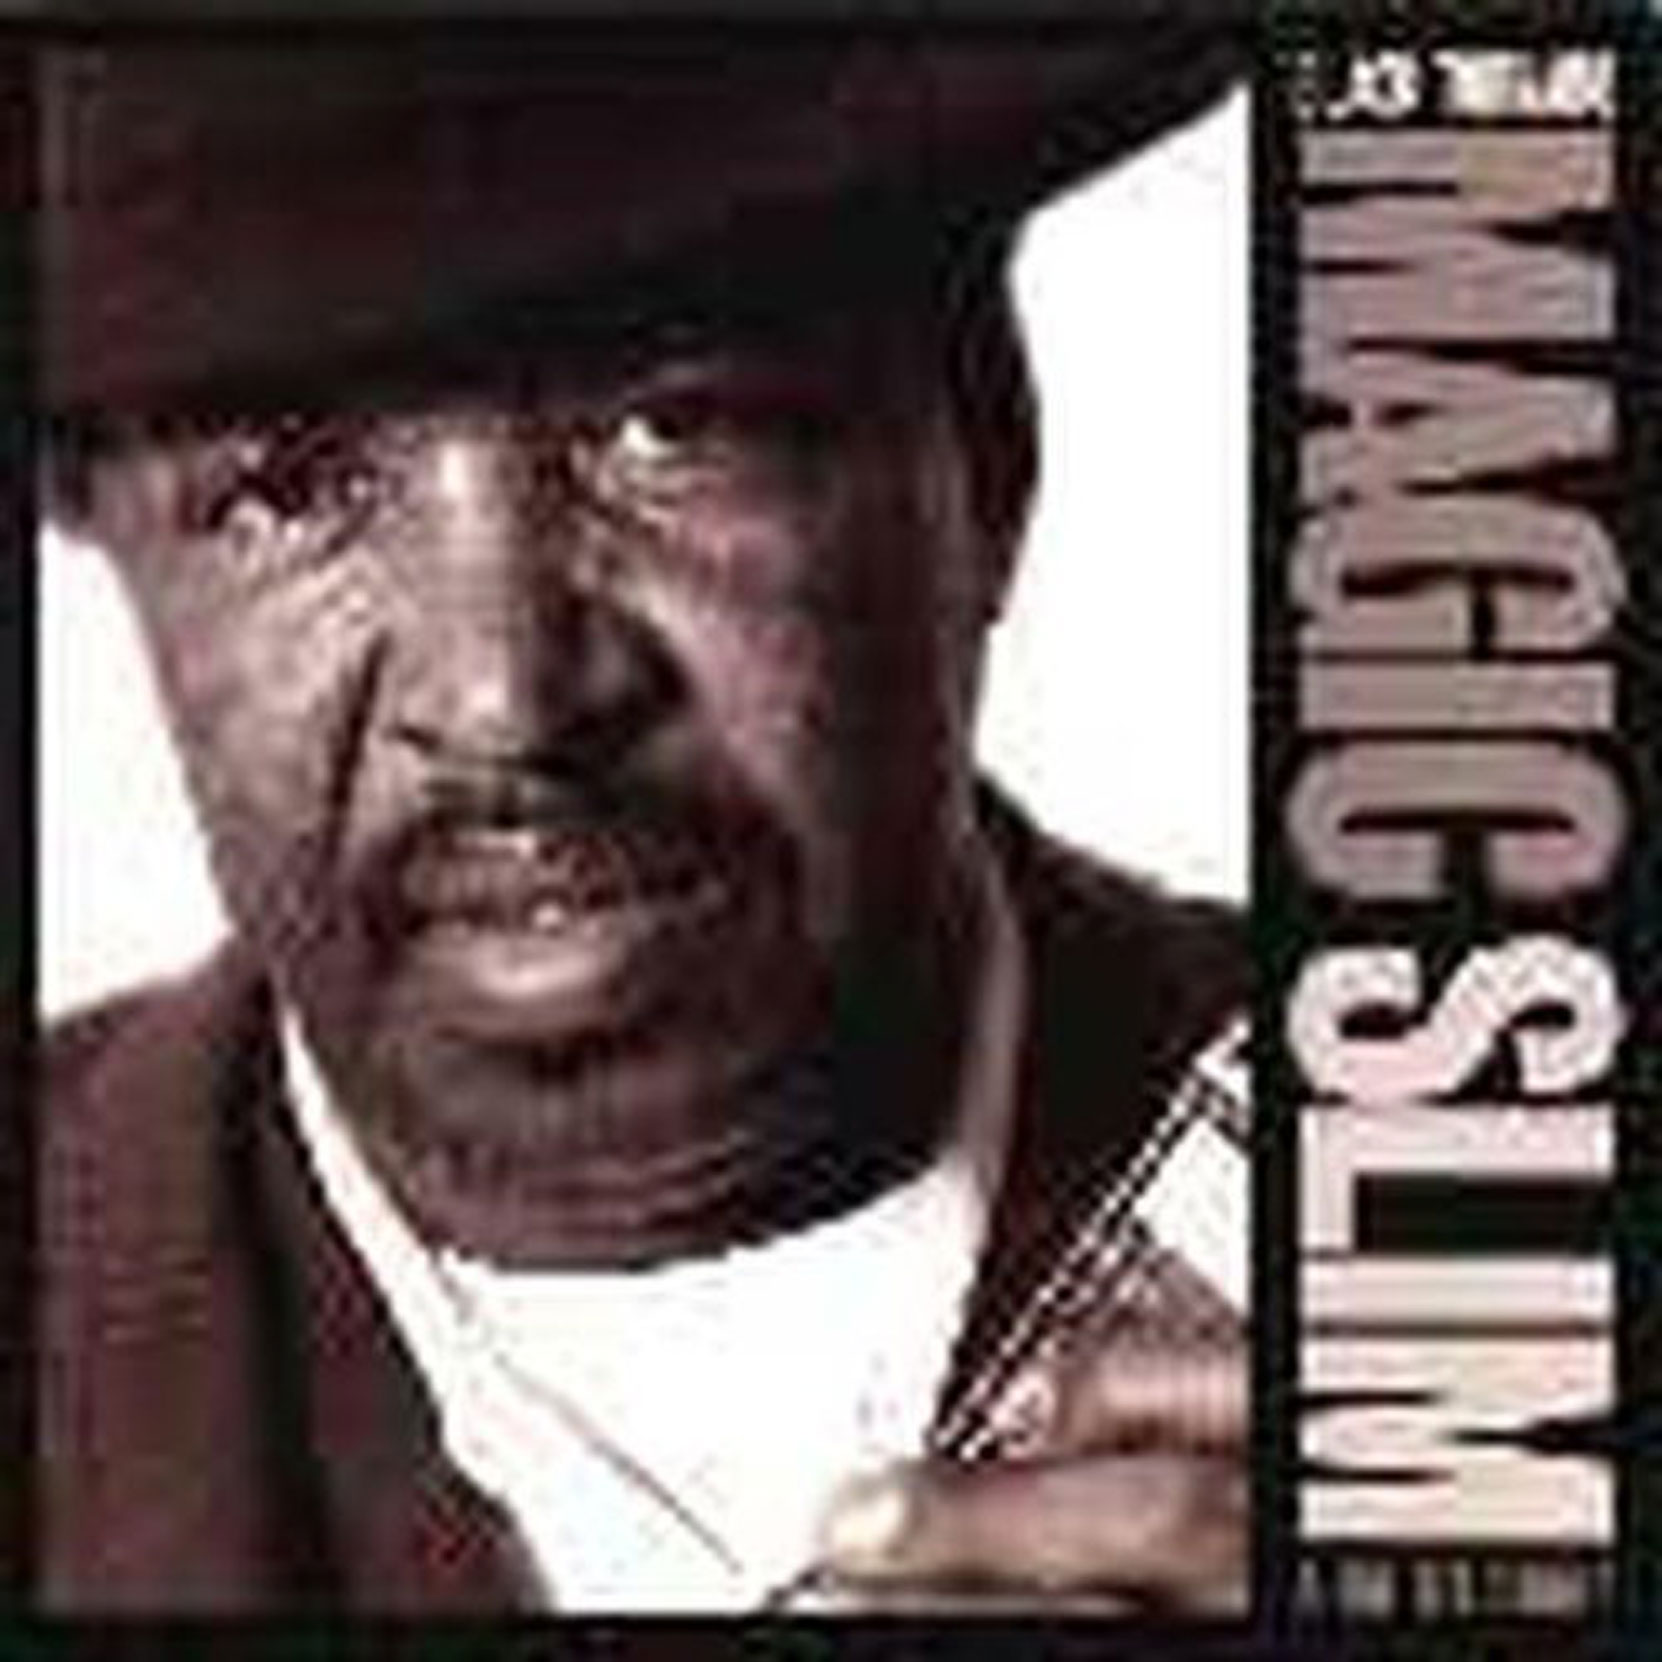 CD cover, Magic Slim, Black Tornado, released in 1998 on Blind Pig Records